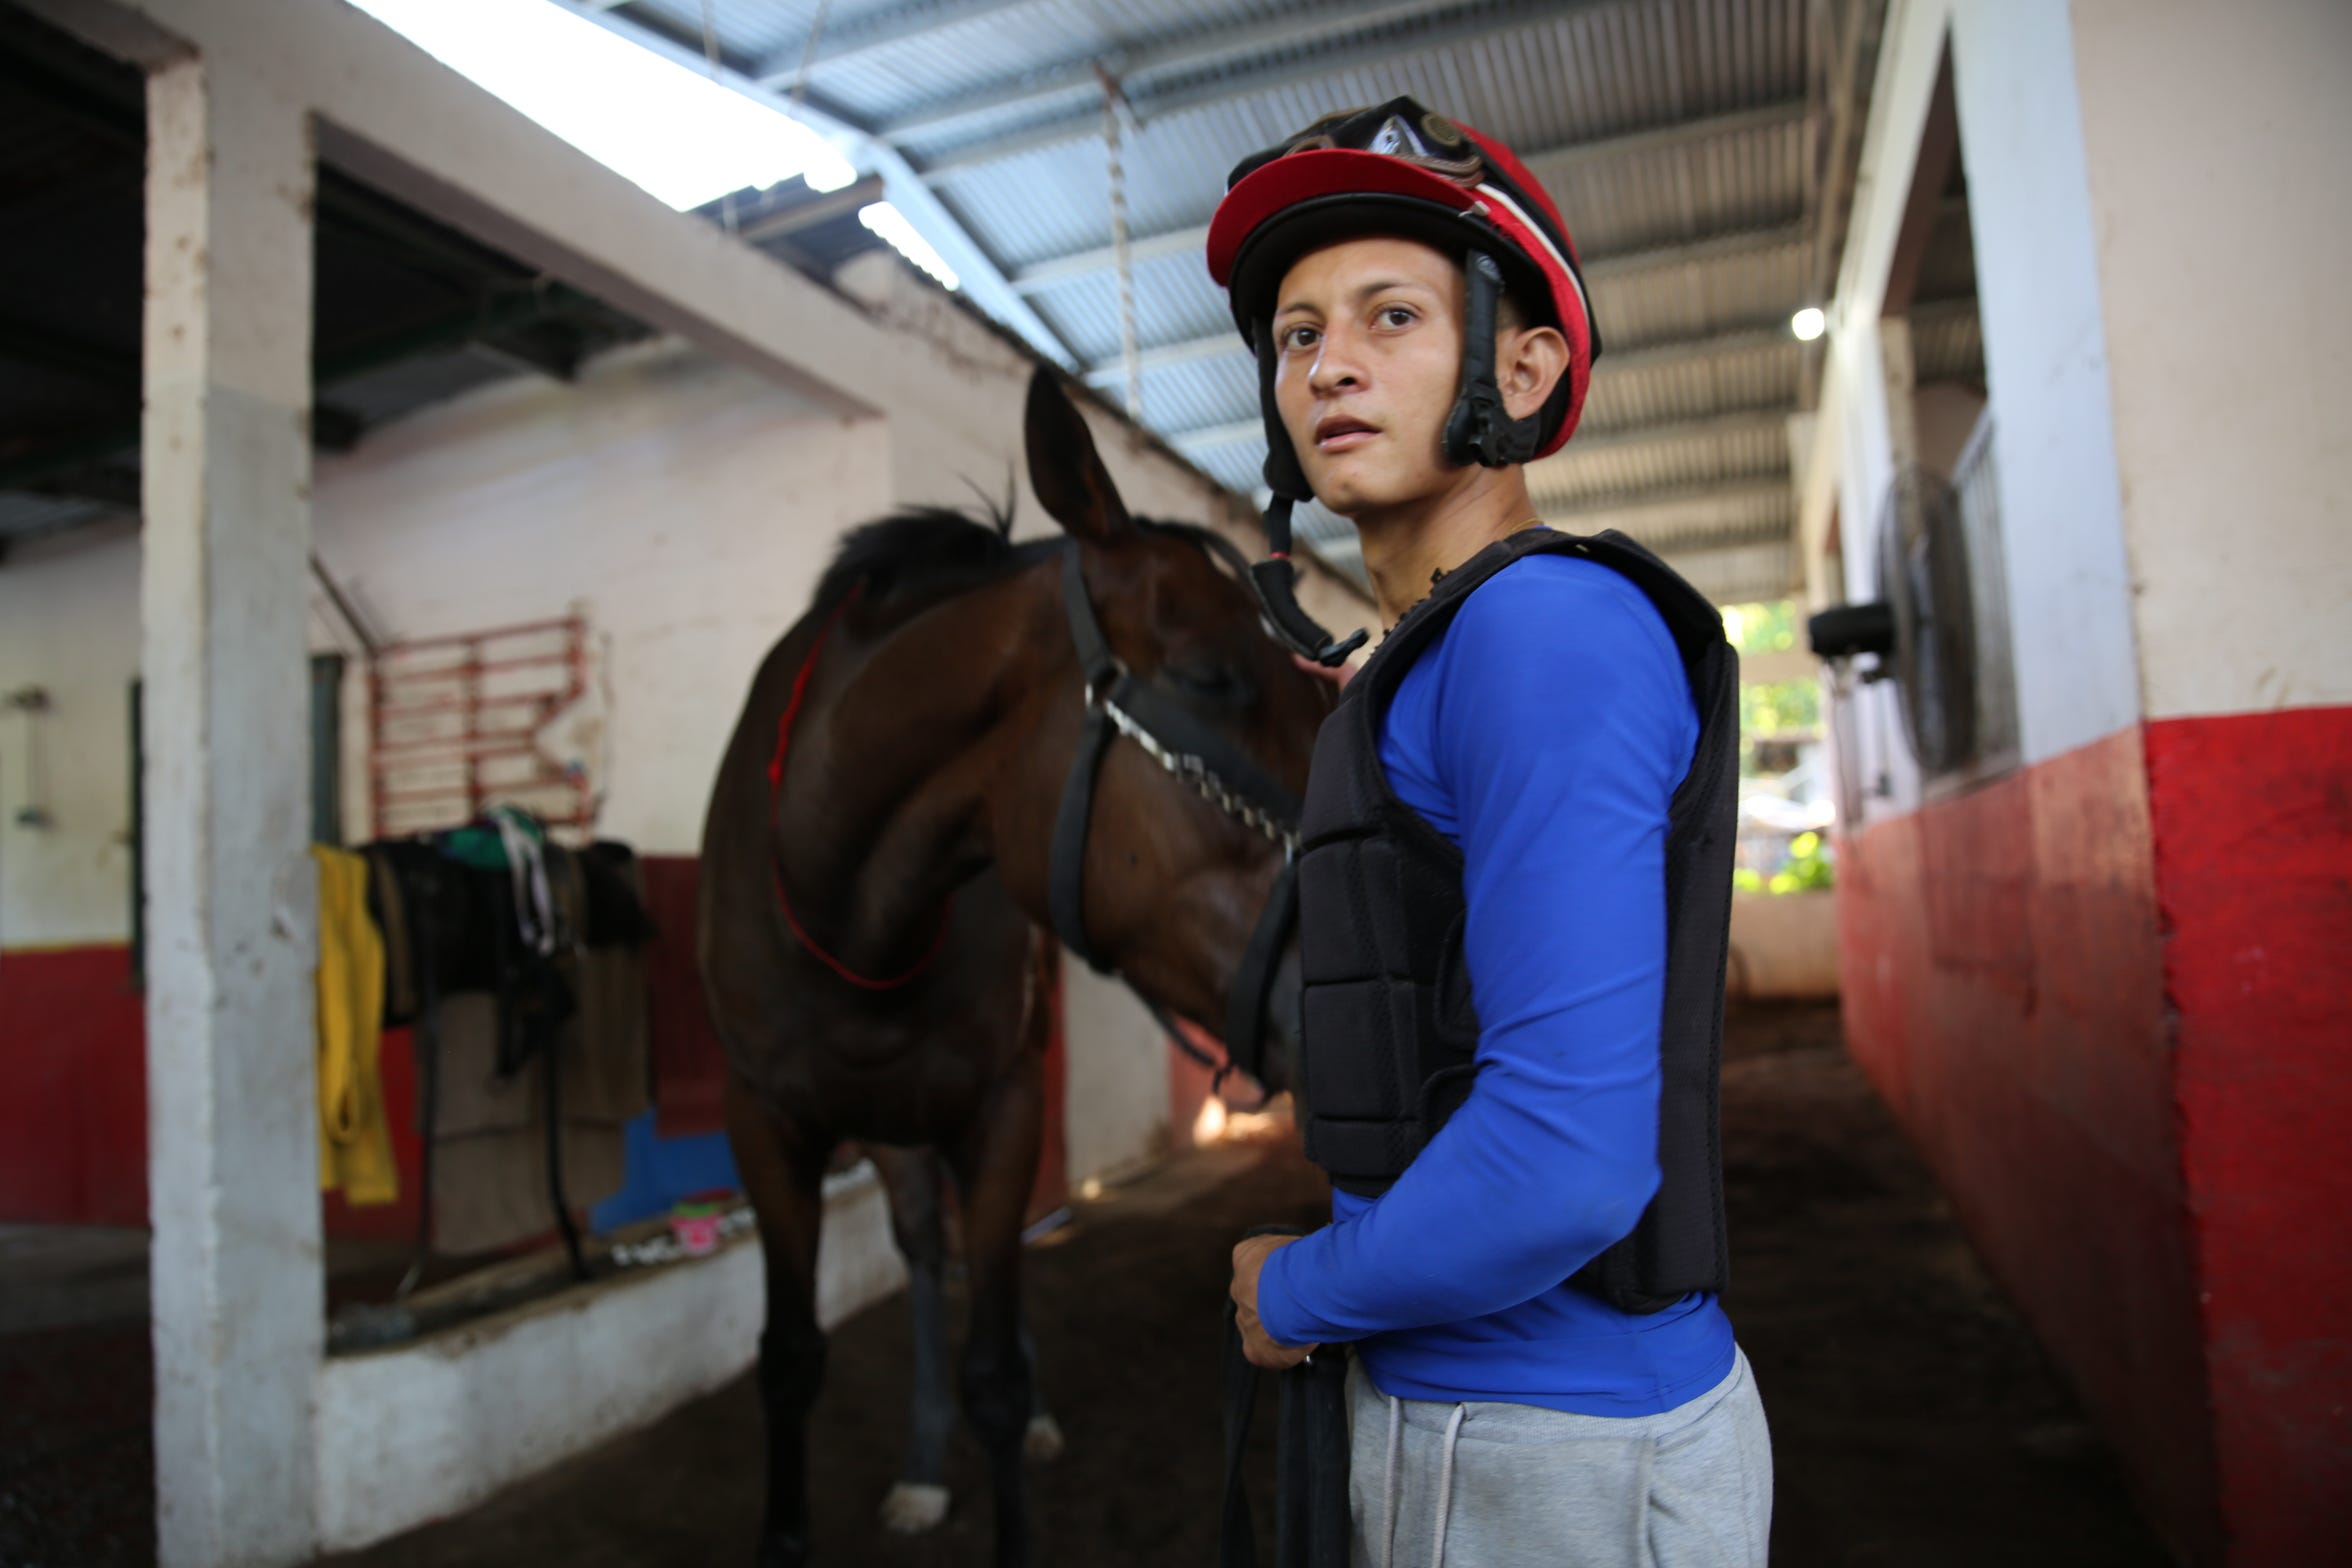 Wilmar Alarcon, 24, is among the students at the famed Laffit Pincay Jr. Technical Jockey Training Academy in Panama.